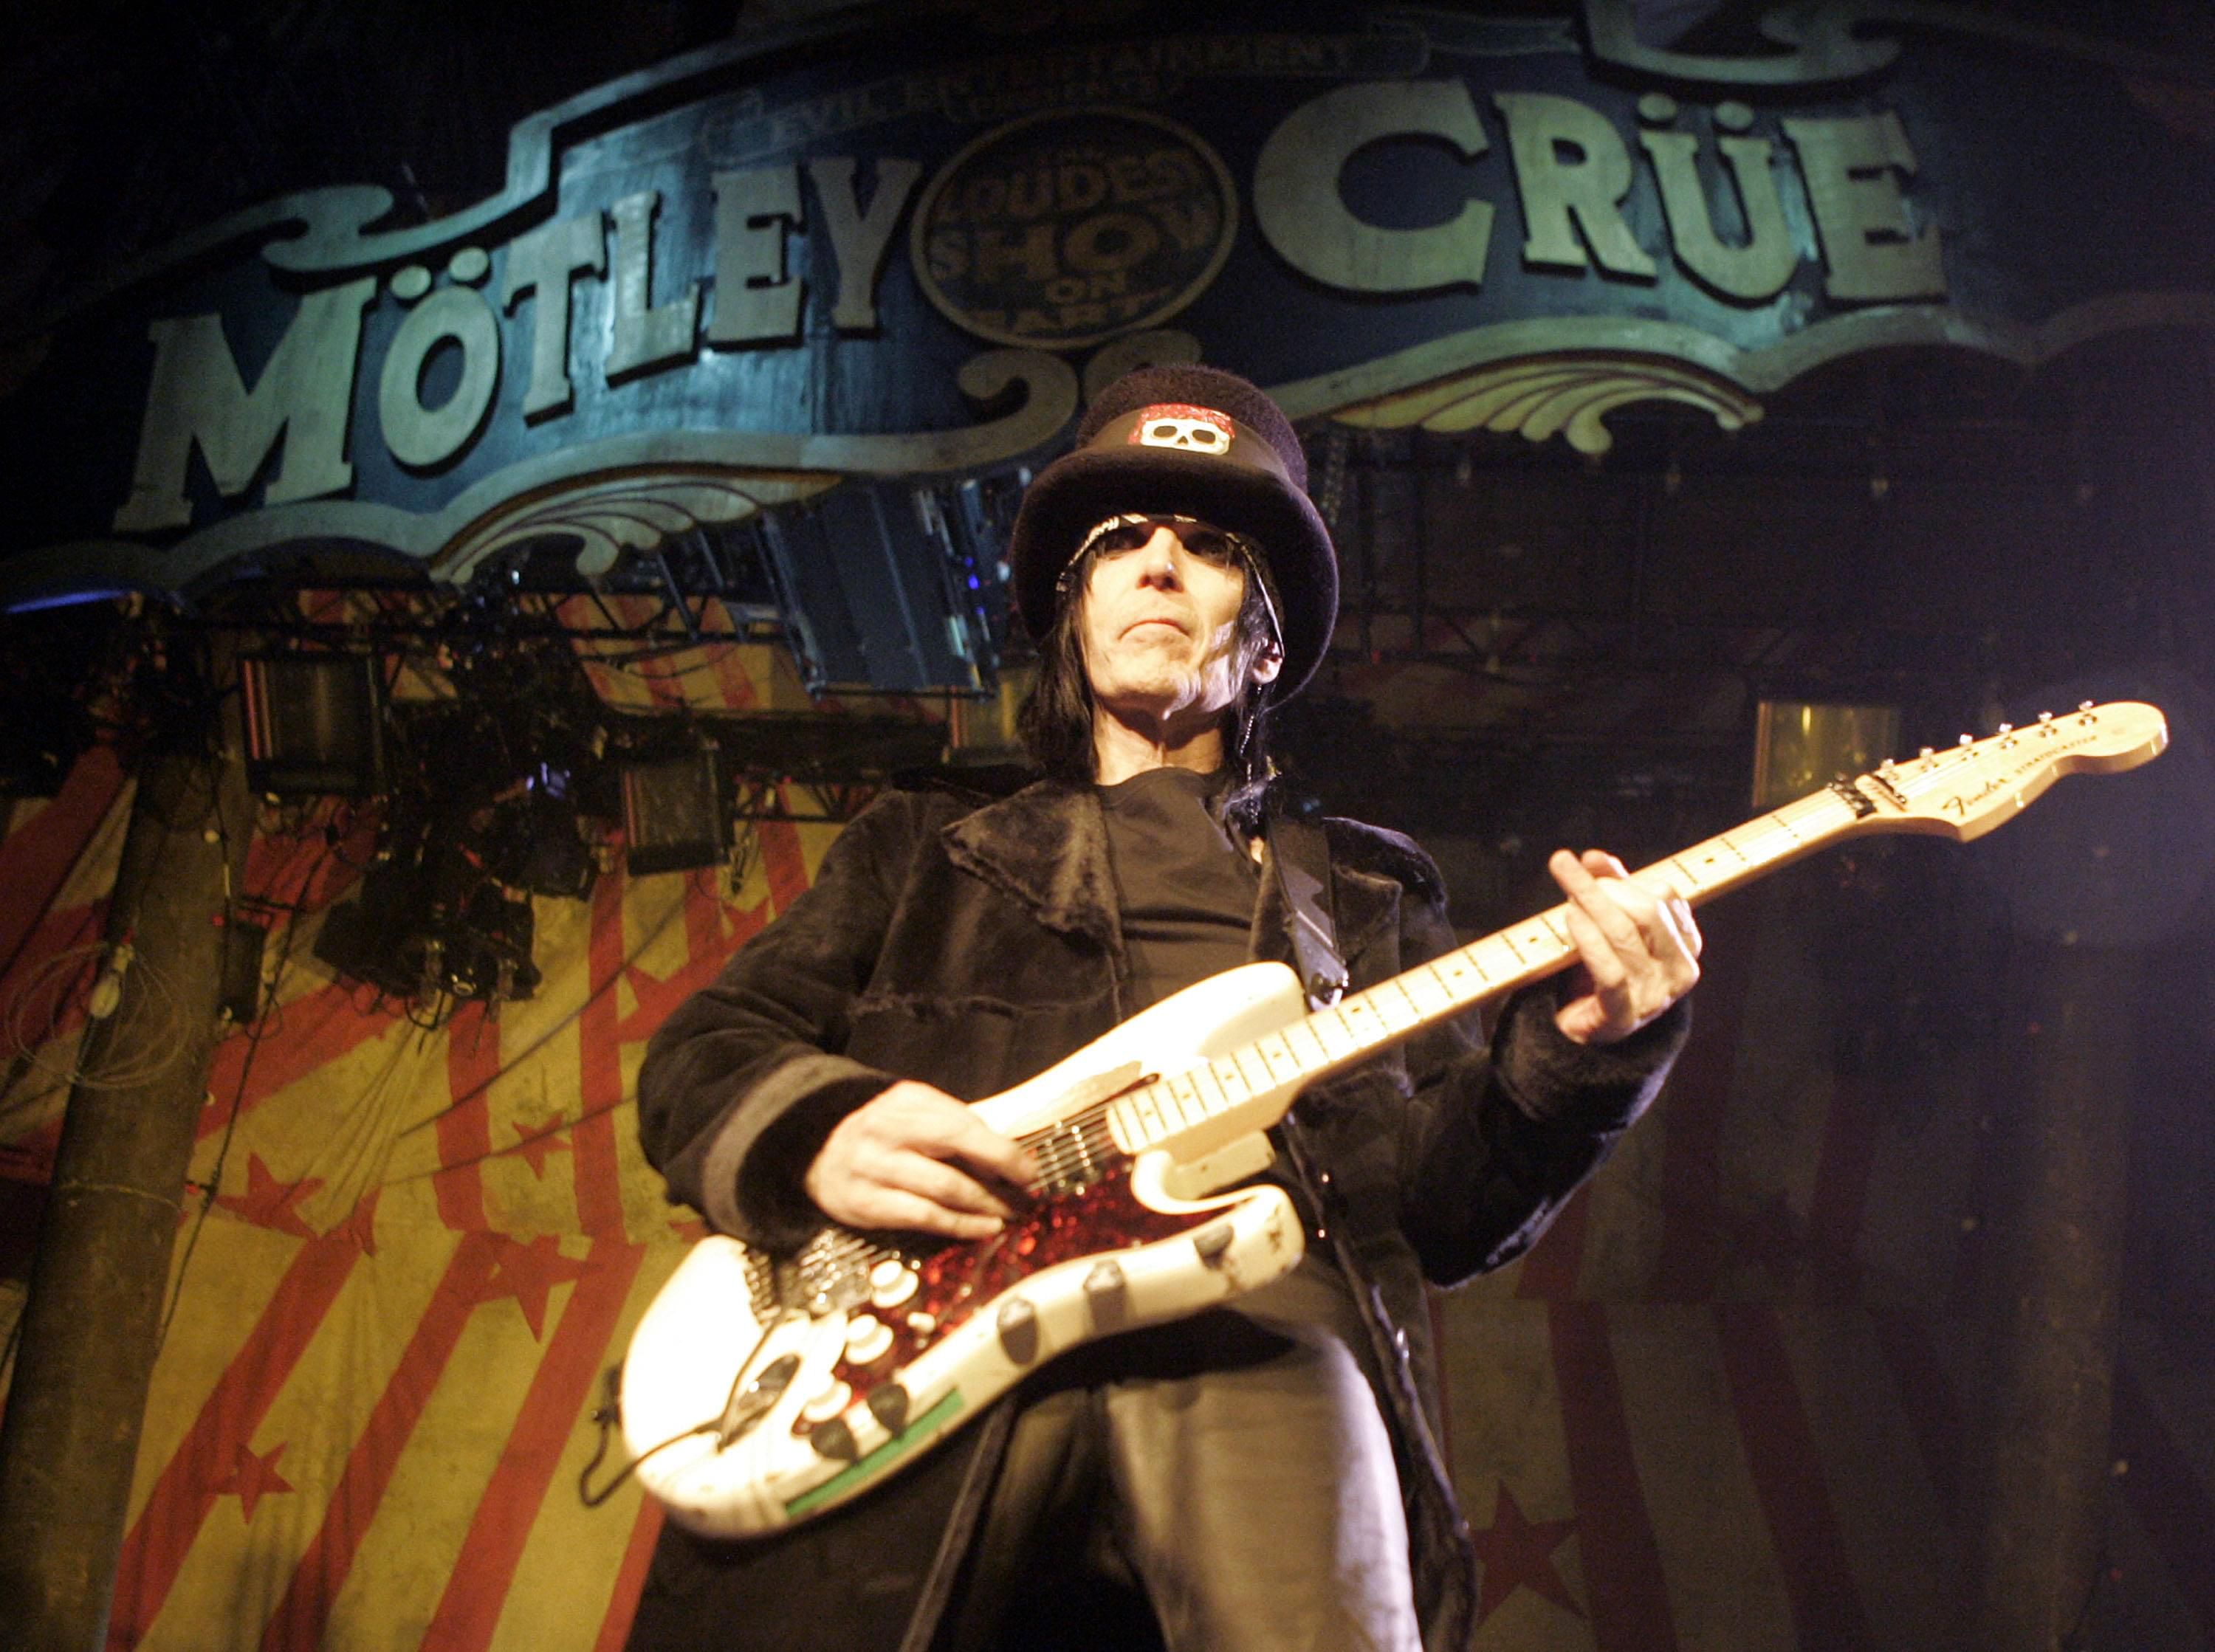 Mick Mars promised us all FREE tickets if Motley Crue ever reunited